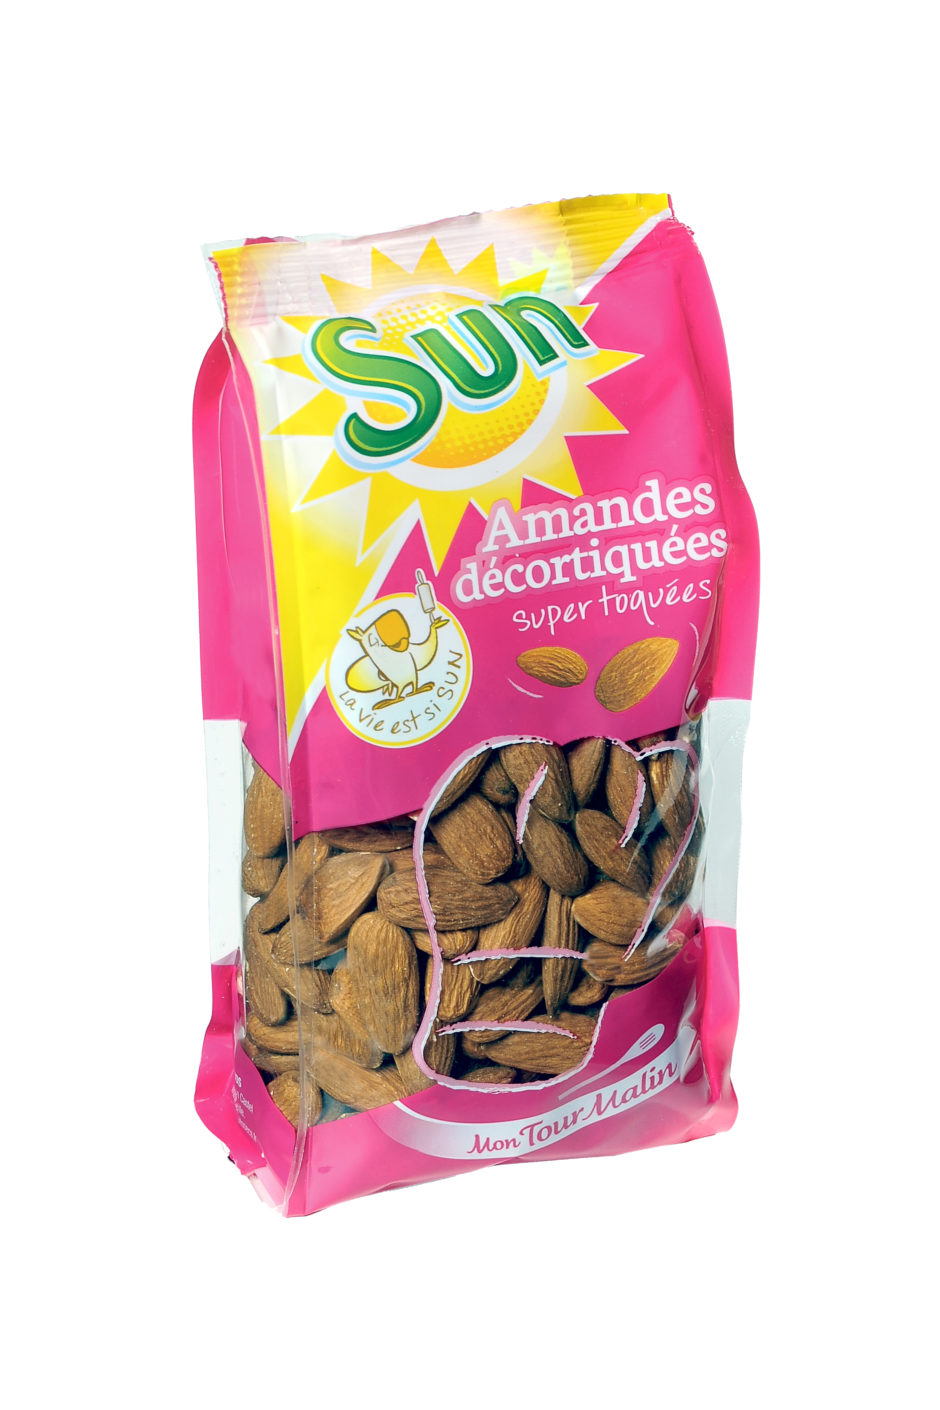 AMANDES DECORTIQUEES MON TOUR MALIN 300G SUN